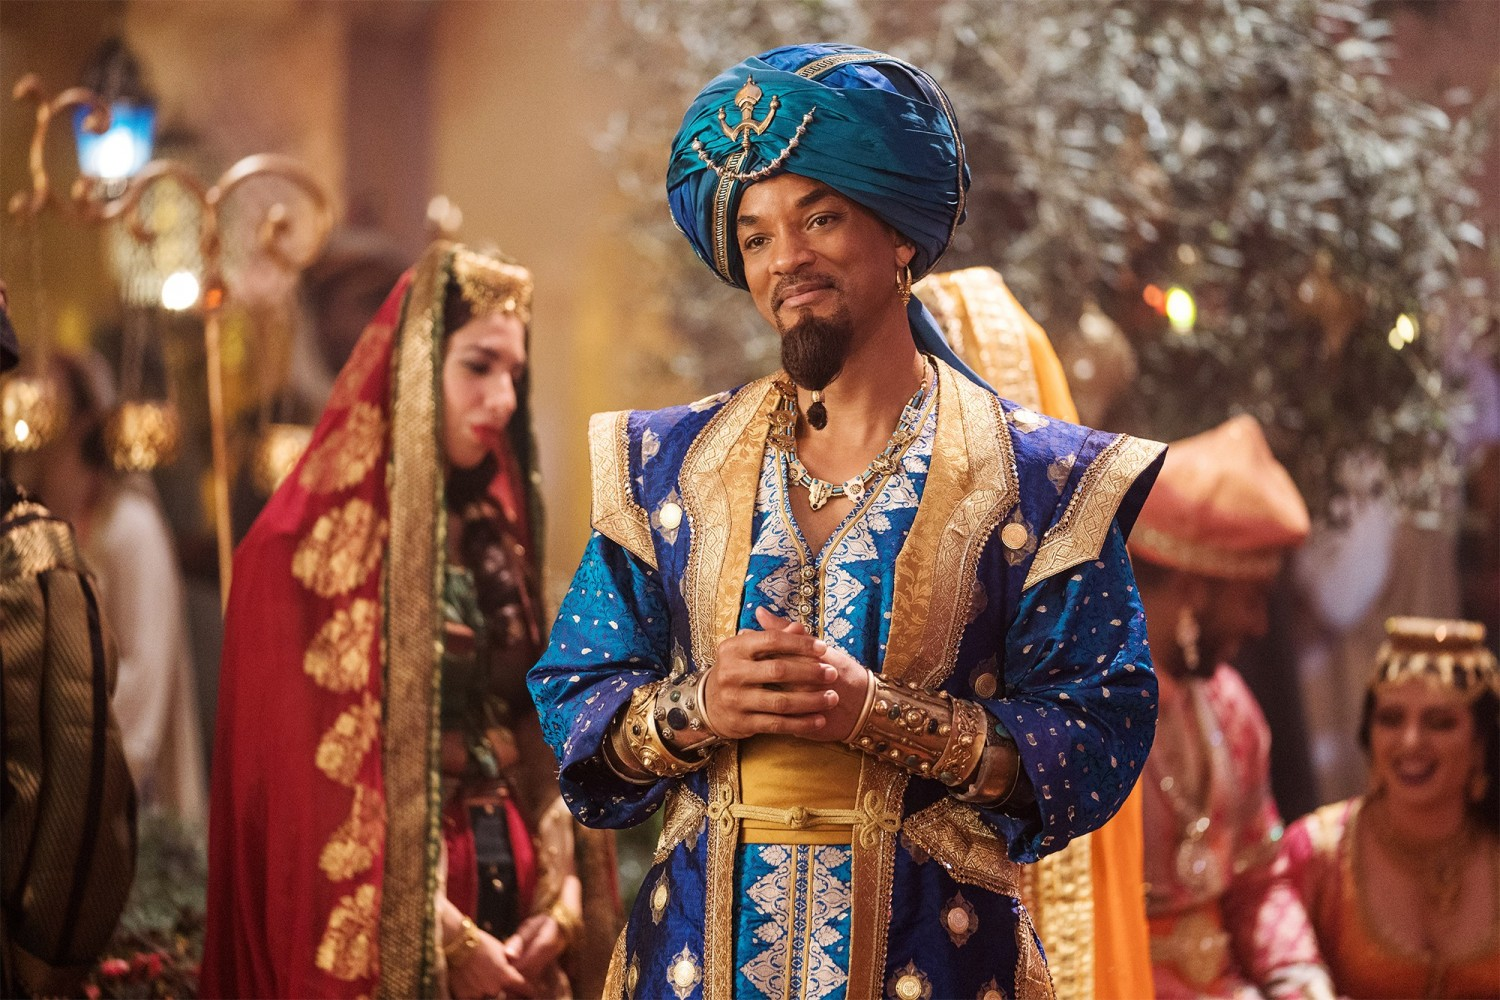 'Aladdin' Sequel in the Works